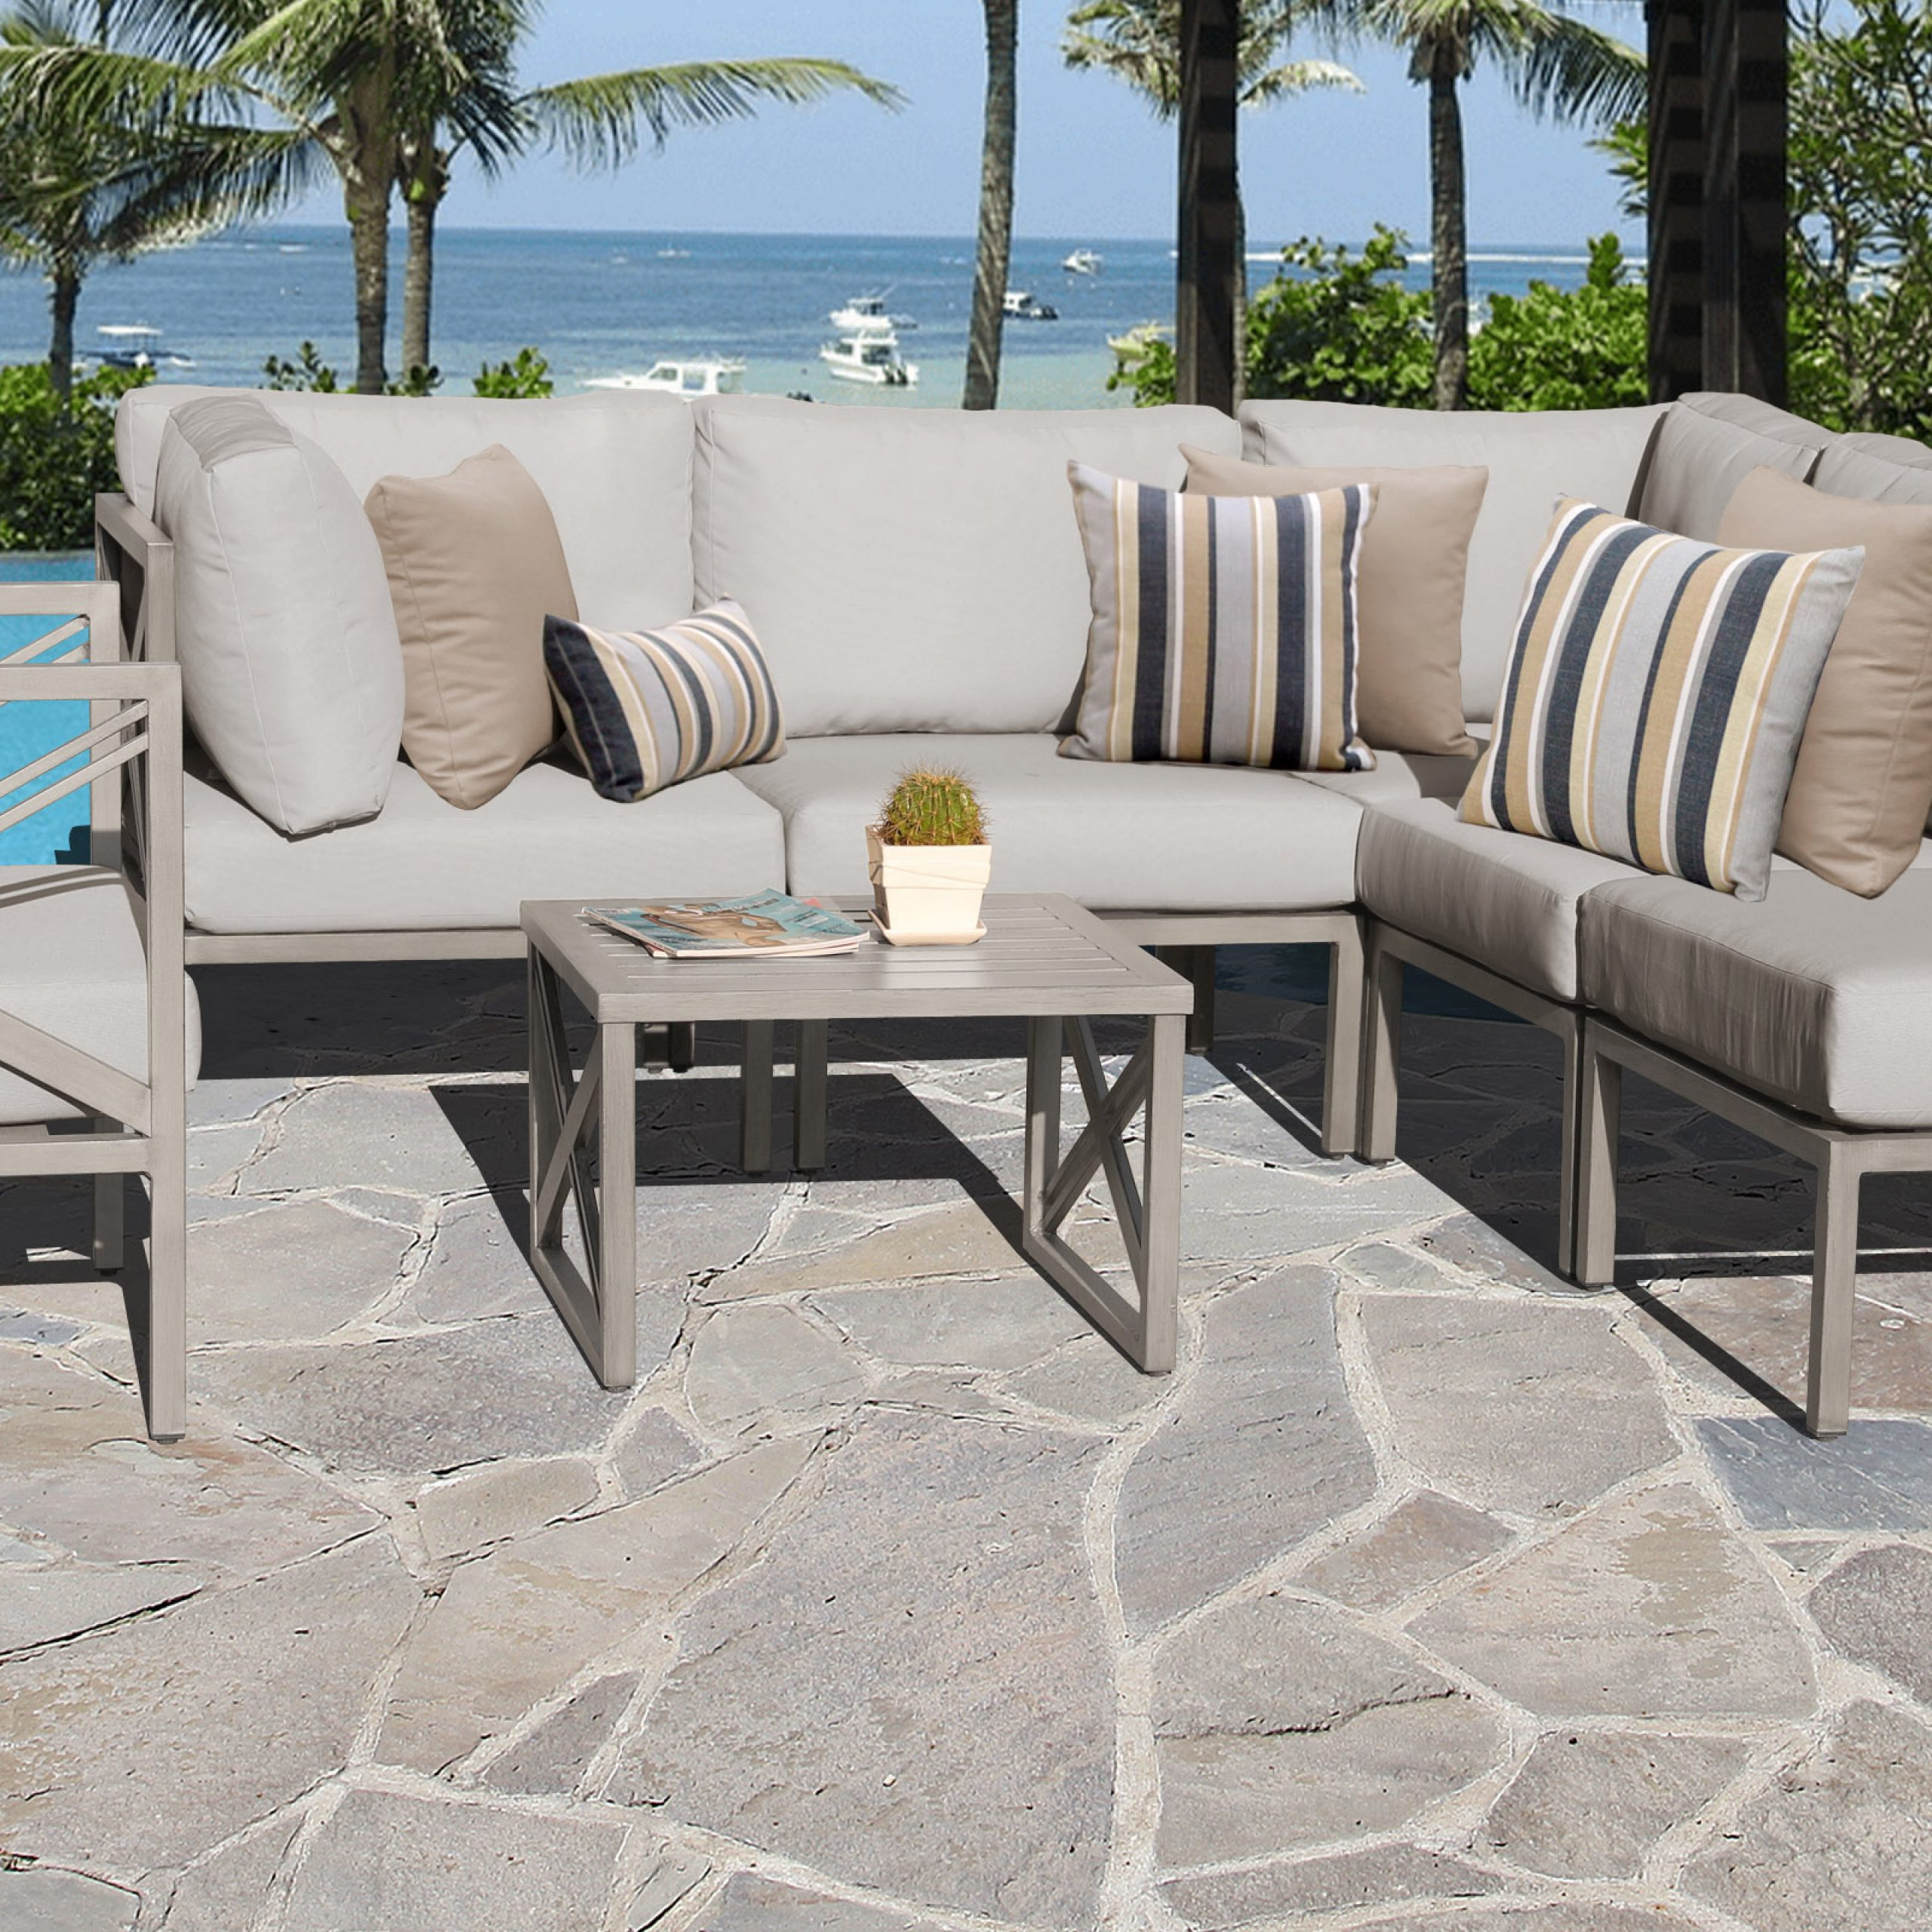 Most Current Carlisle Patio Sofas With Cushions Within Carlisle 7 Piece Outdoor Patio Furniture Deep Seating Set 07D (View 16 of 25)